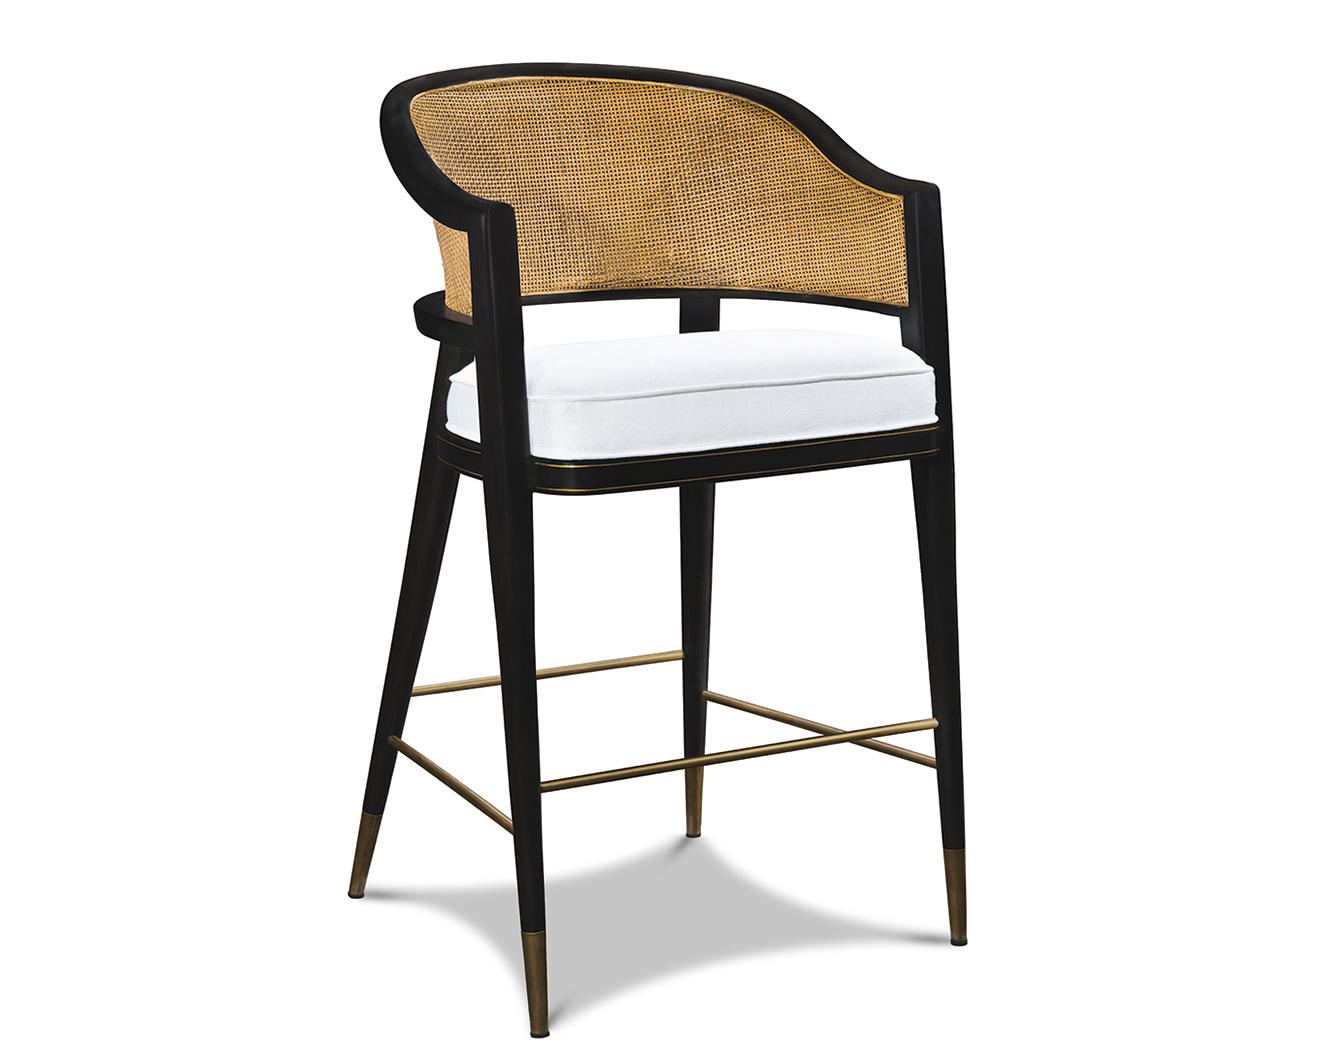 GRASSE II BAR STOOL COUNTER HEIGHT